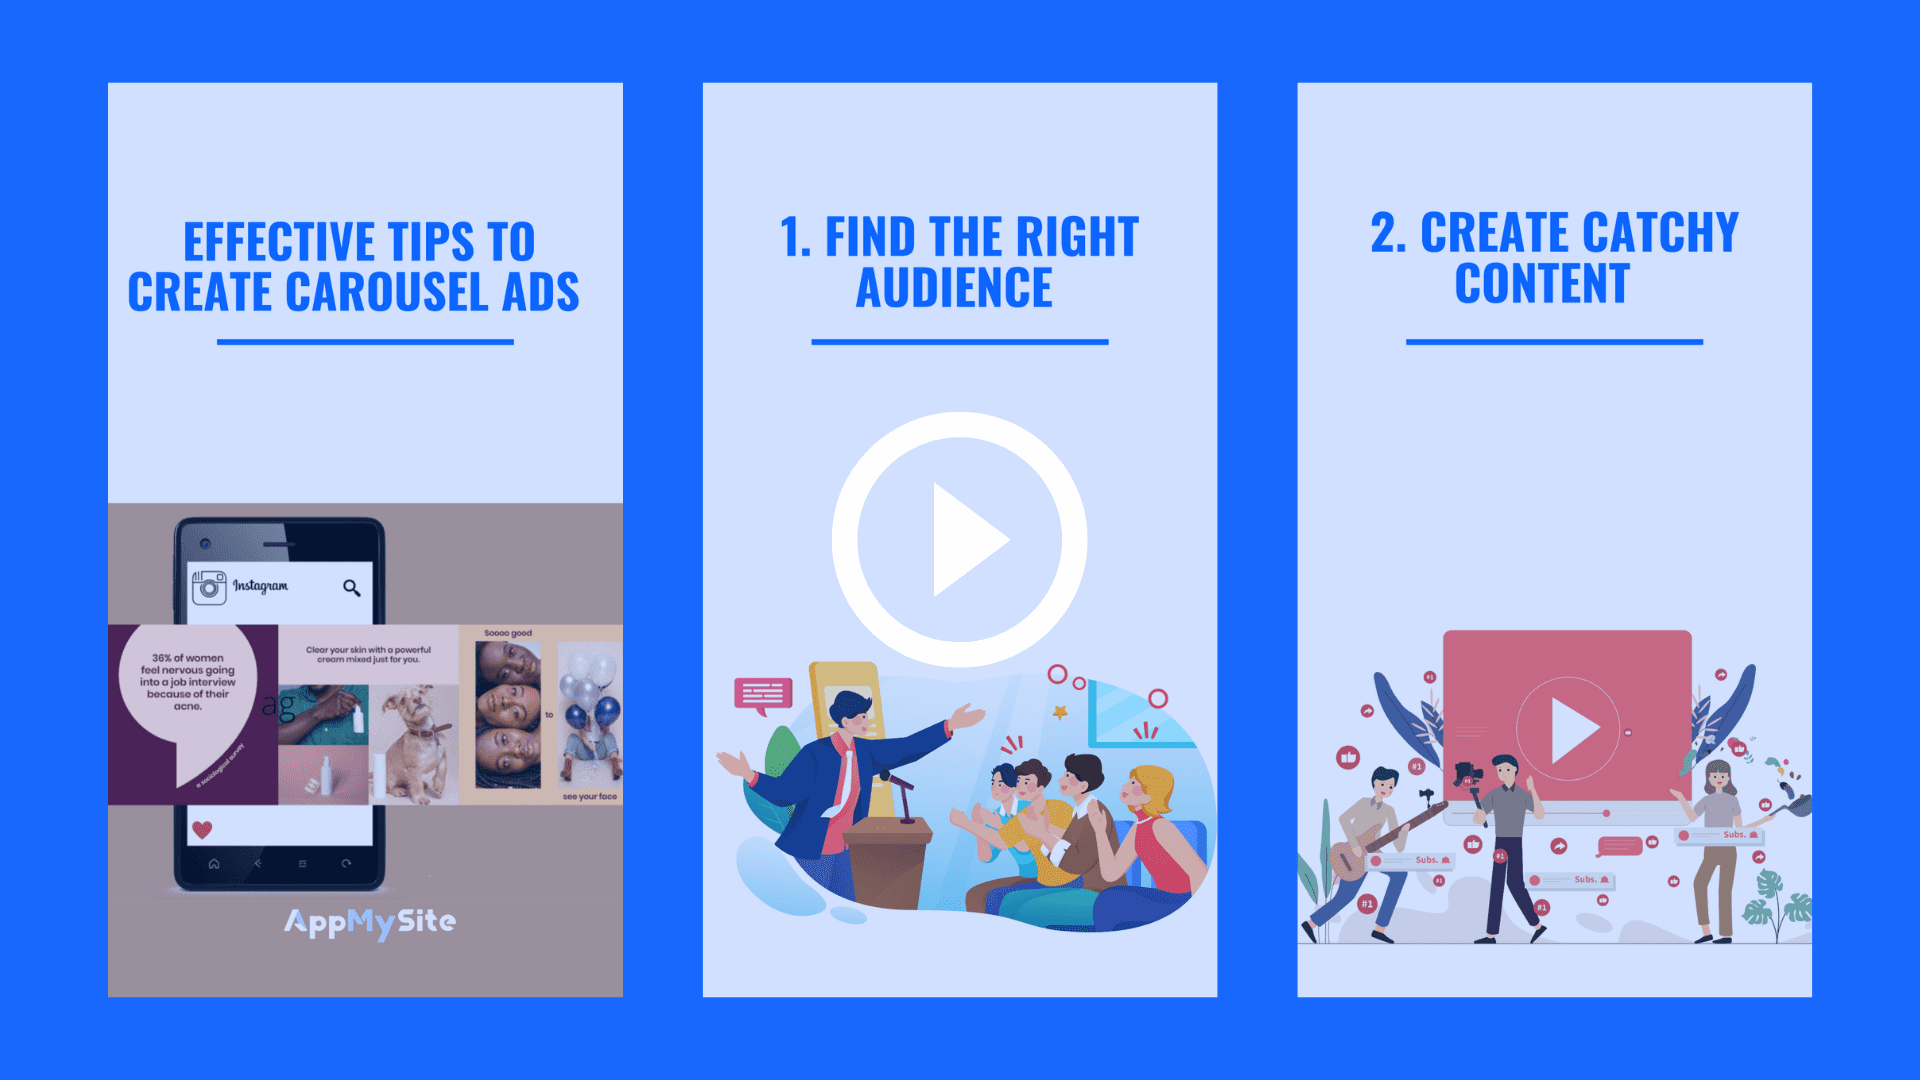 Effective tips to create carousel ads